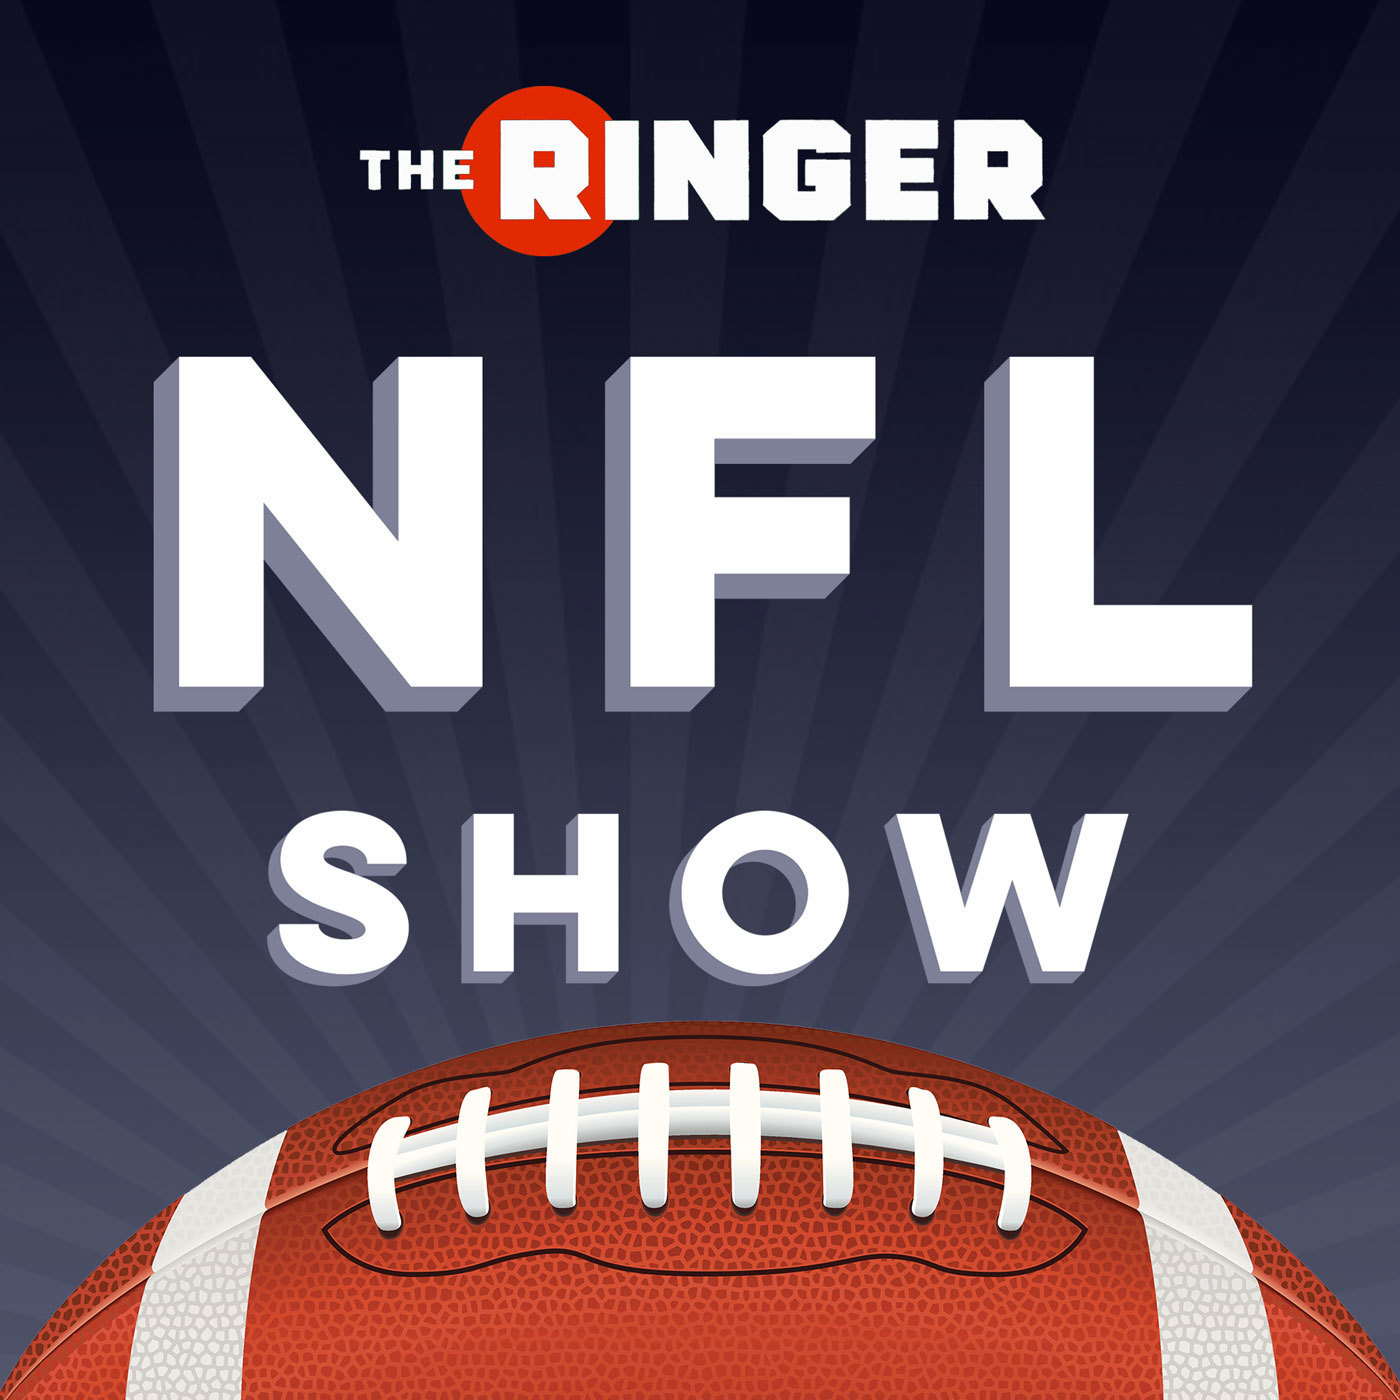 The Ringer NFL Show by The Ringer on Apple Podcasts 97f1a025e